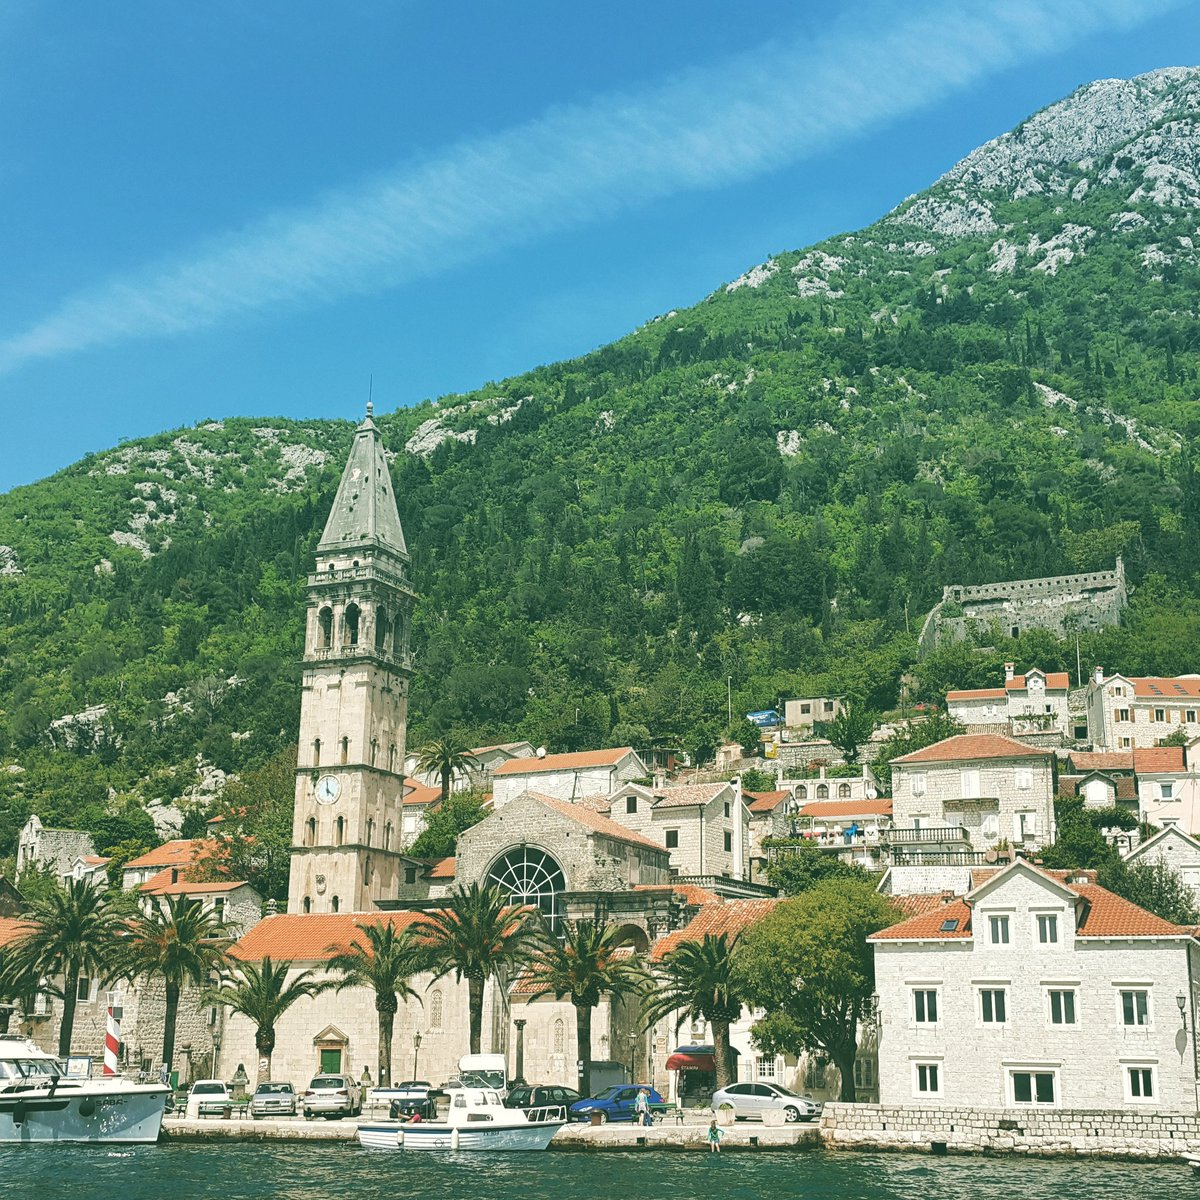 Perast by boat. Couple of days ago. #MontenegroAdventures https://t.co/IwYEGu9iID